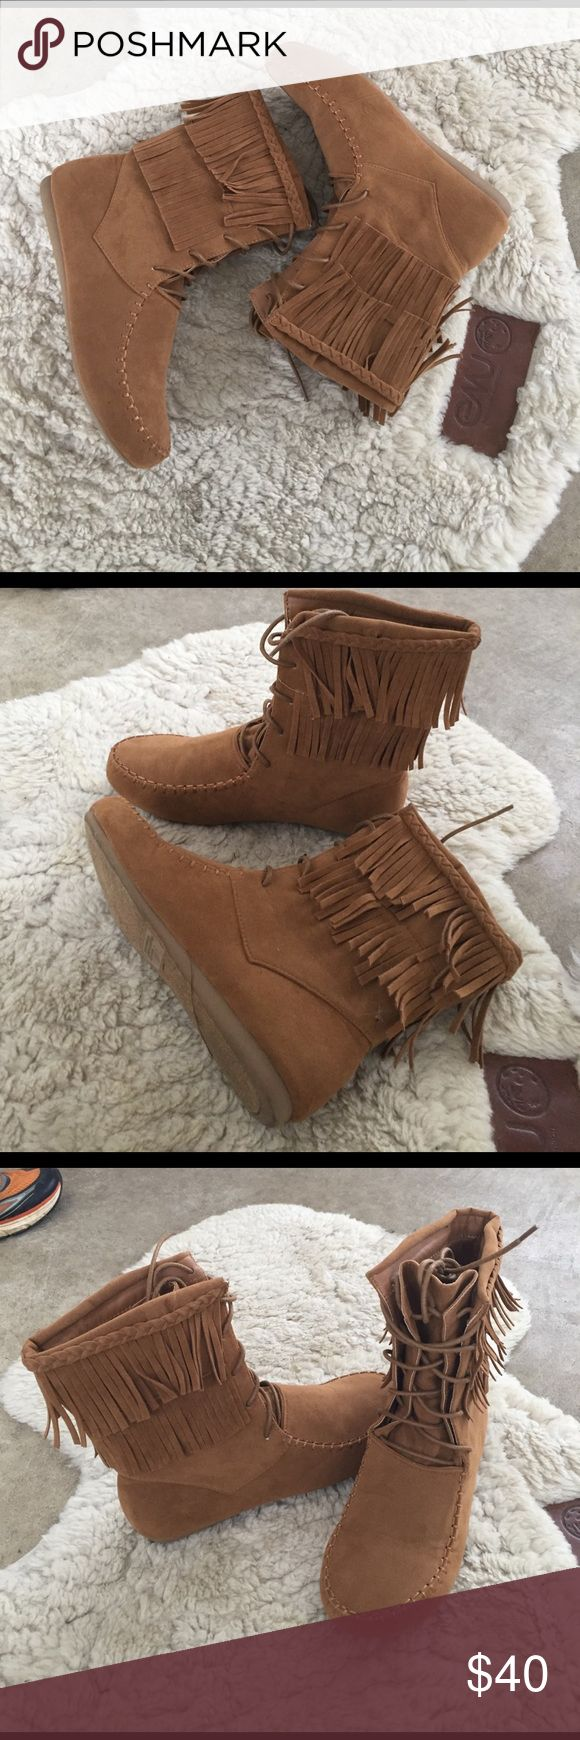 Mocassin booties Women's tan mocassin booties w/ fringes. Worn ONCE! Like new condition Shoes Ankle Boots & Booties